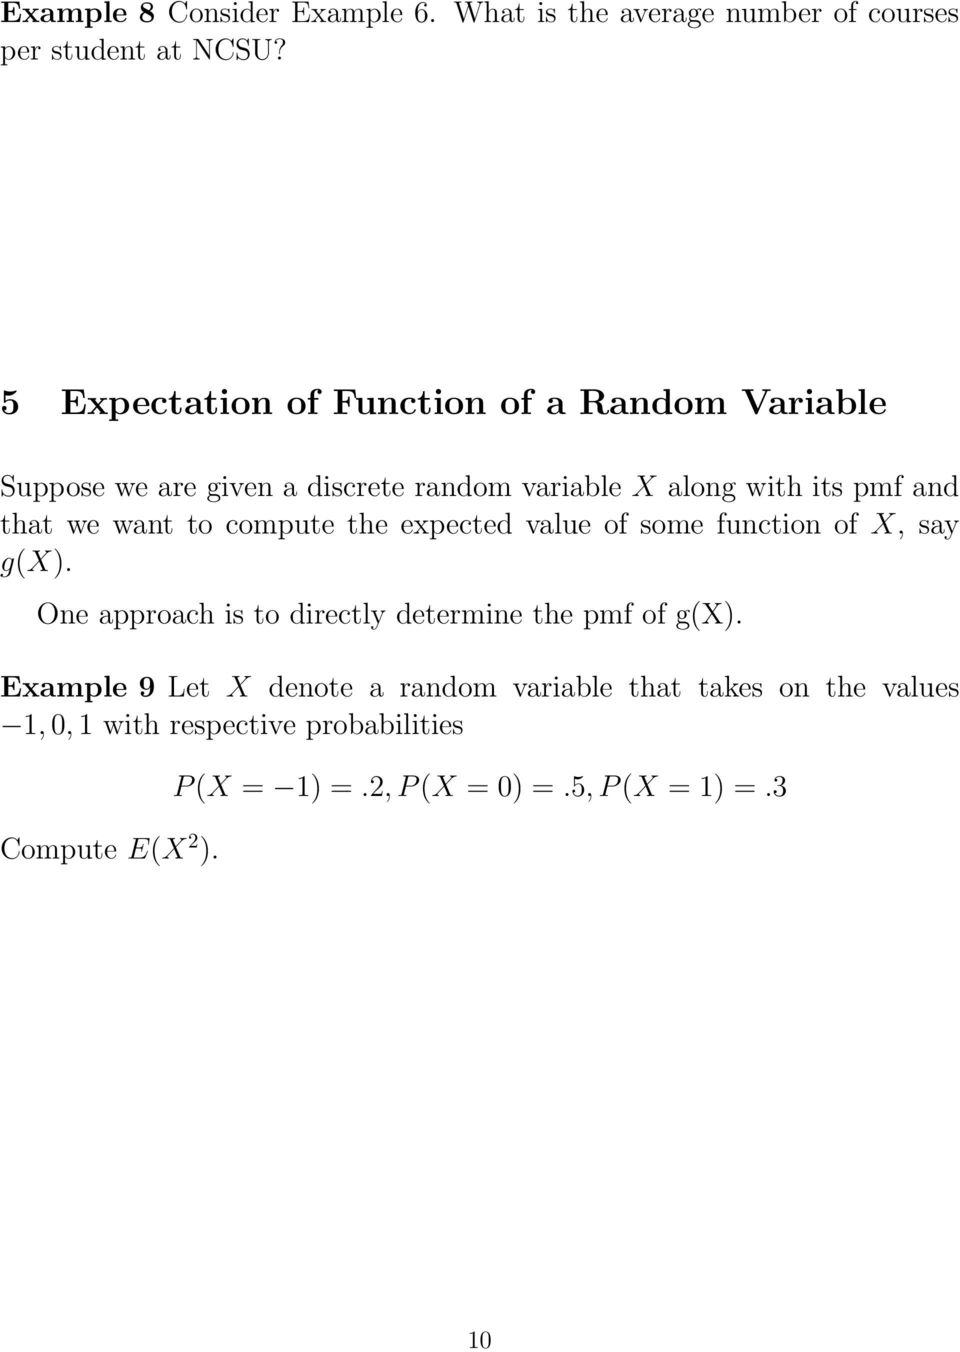 we want to compute the expected value of some function of X, say g(x). One approach is to directly determine the pmf of g(x).